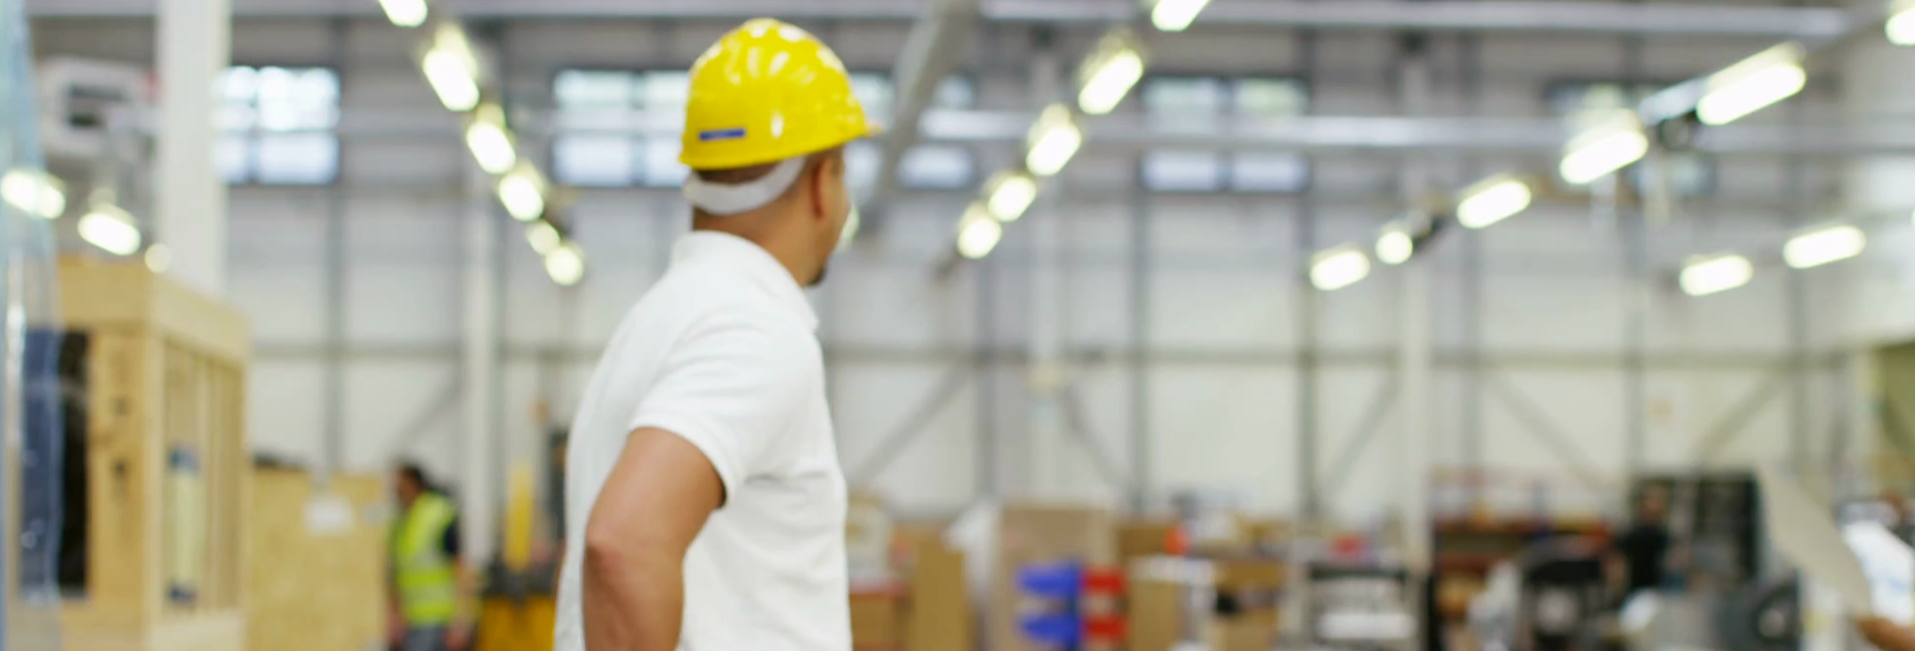 4k-shot-of-a-young-african-american-man-working-in-a-warehouse-slow-motion_h4owh6g4g_thumbnail-full01-1